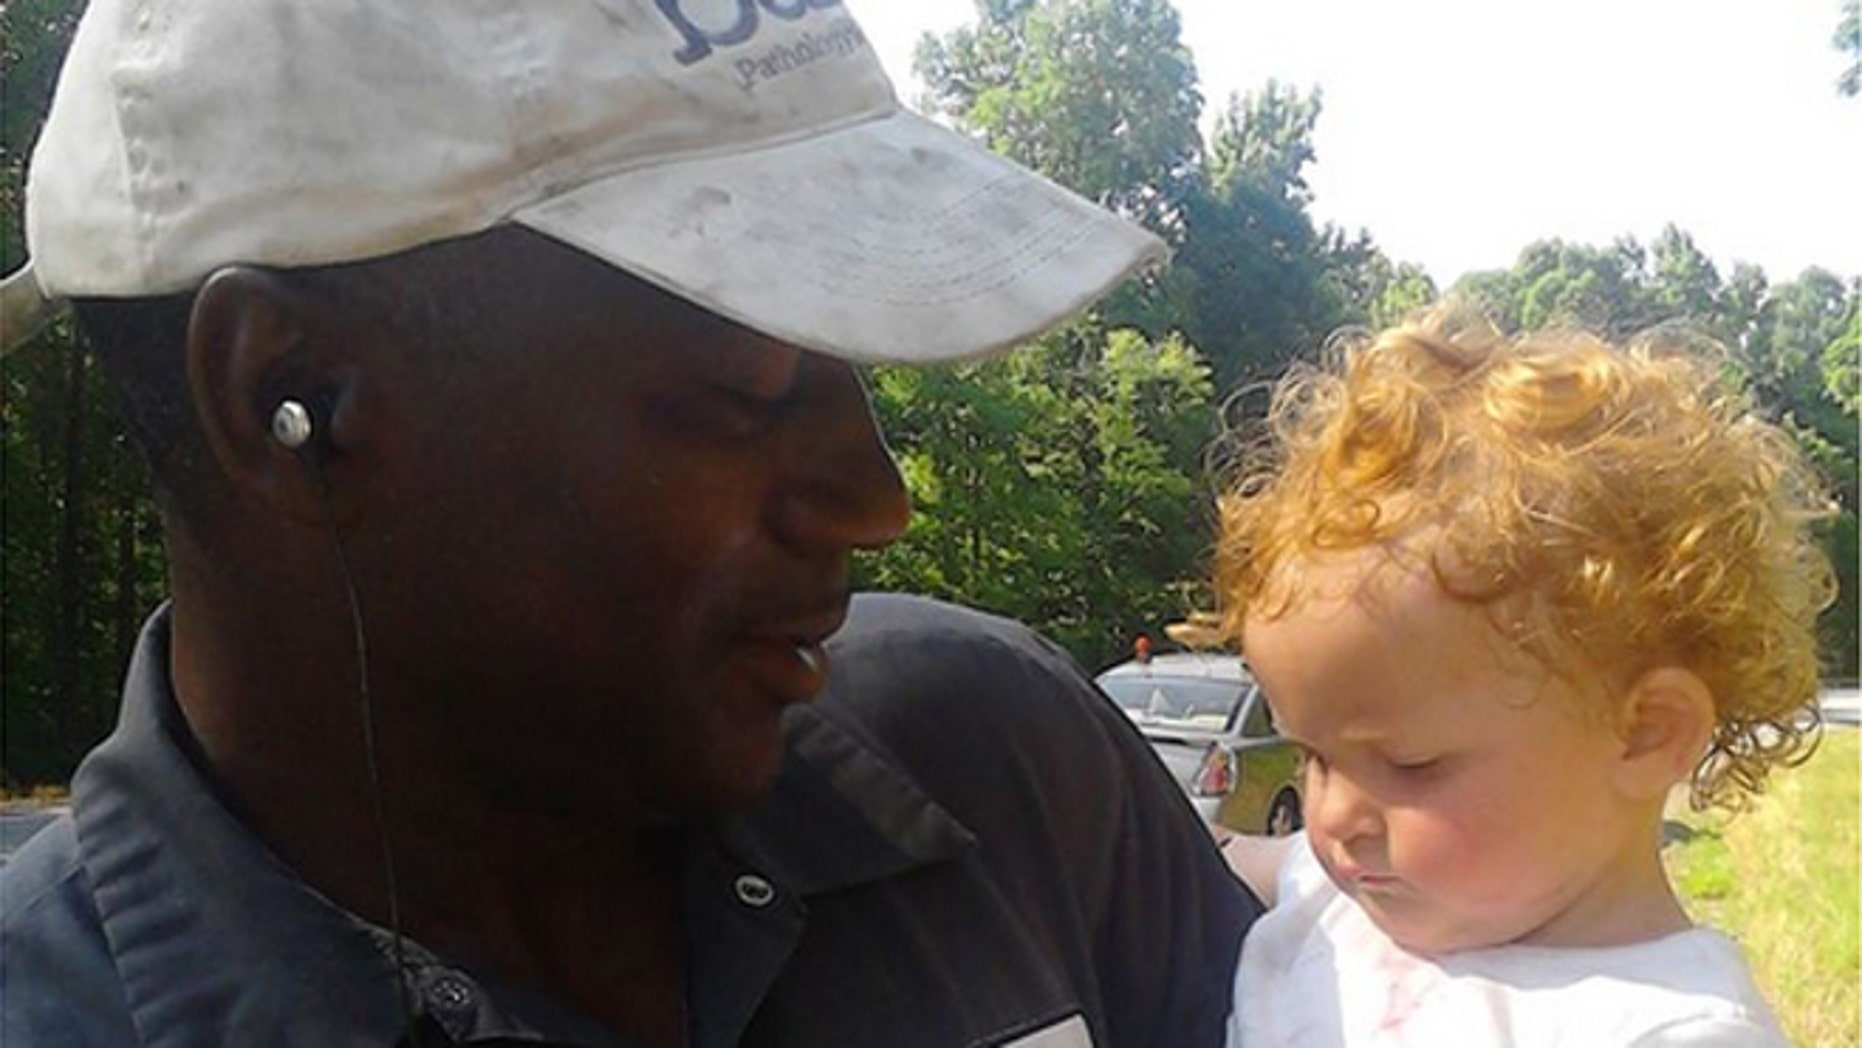 Bryant Collins spotted the girl around 10 a.m. Friday as he drove along Highway 72 in Carlton, which is east of Atlanta.